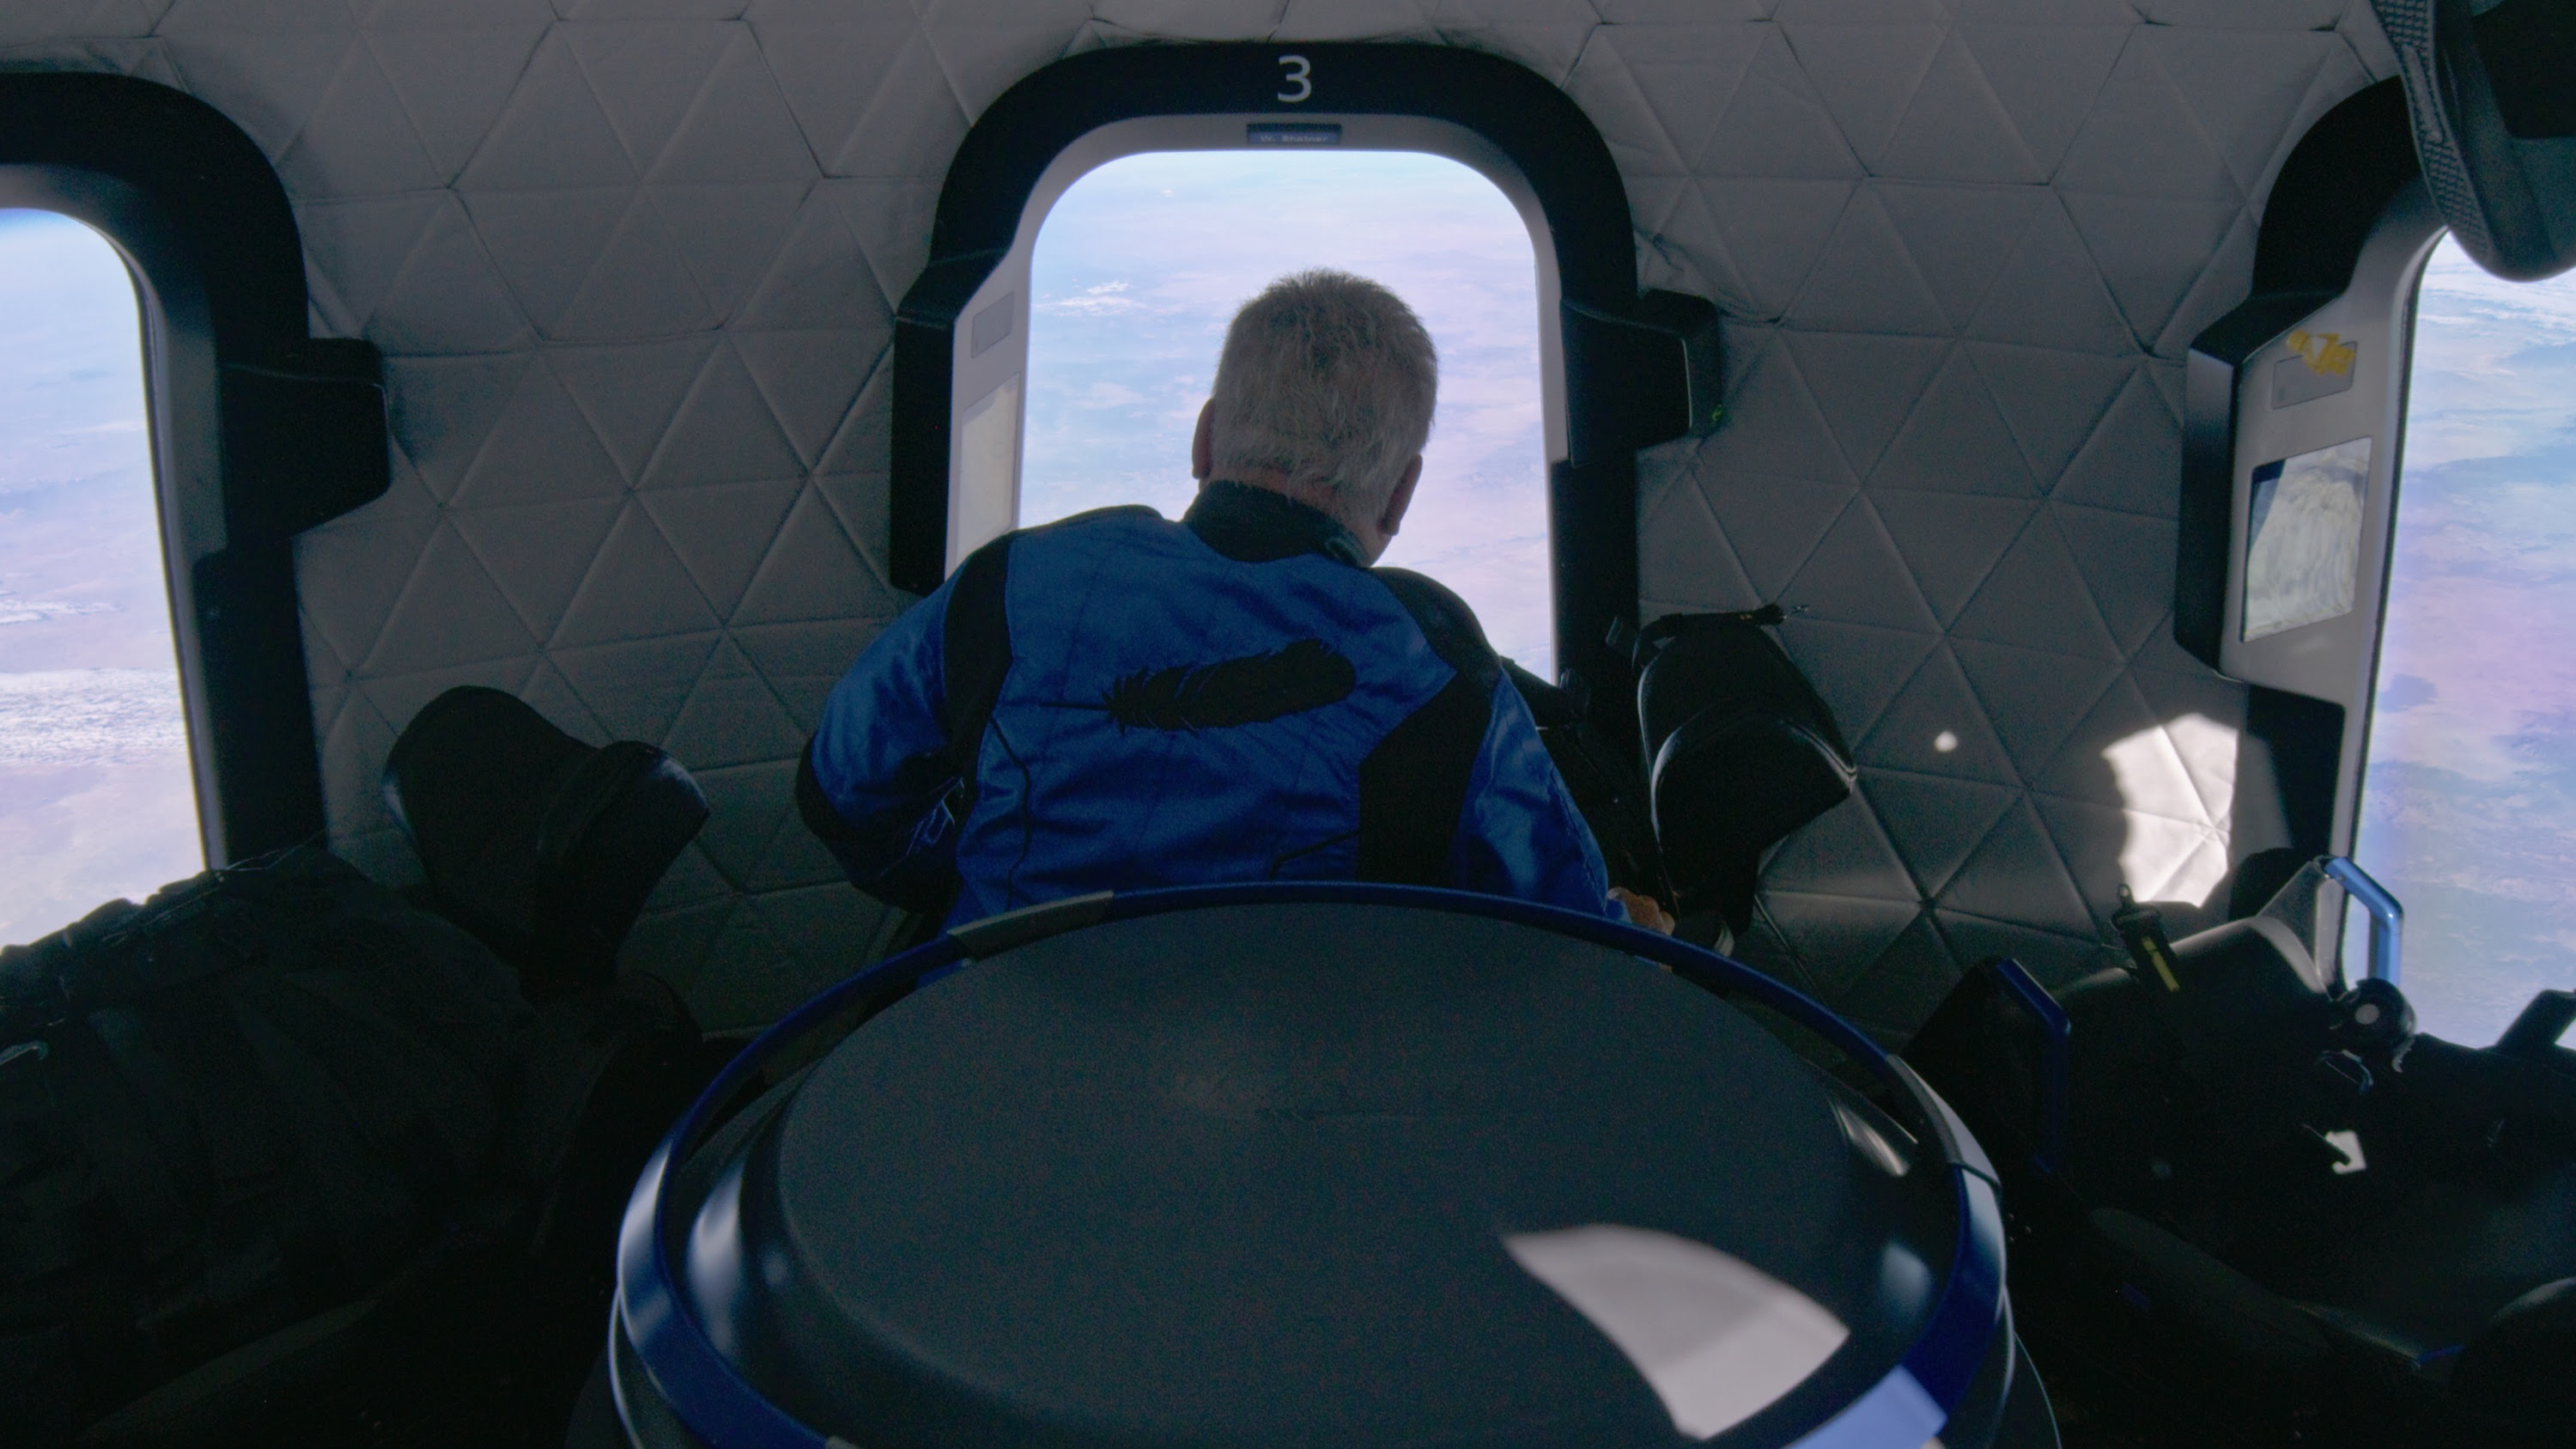 Watch an awestruck William Shatner get emotional about trip to space